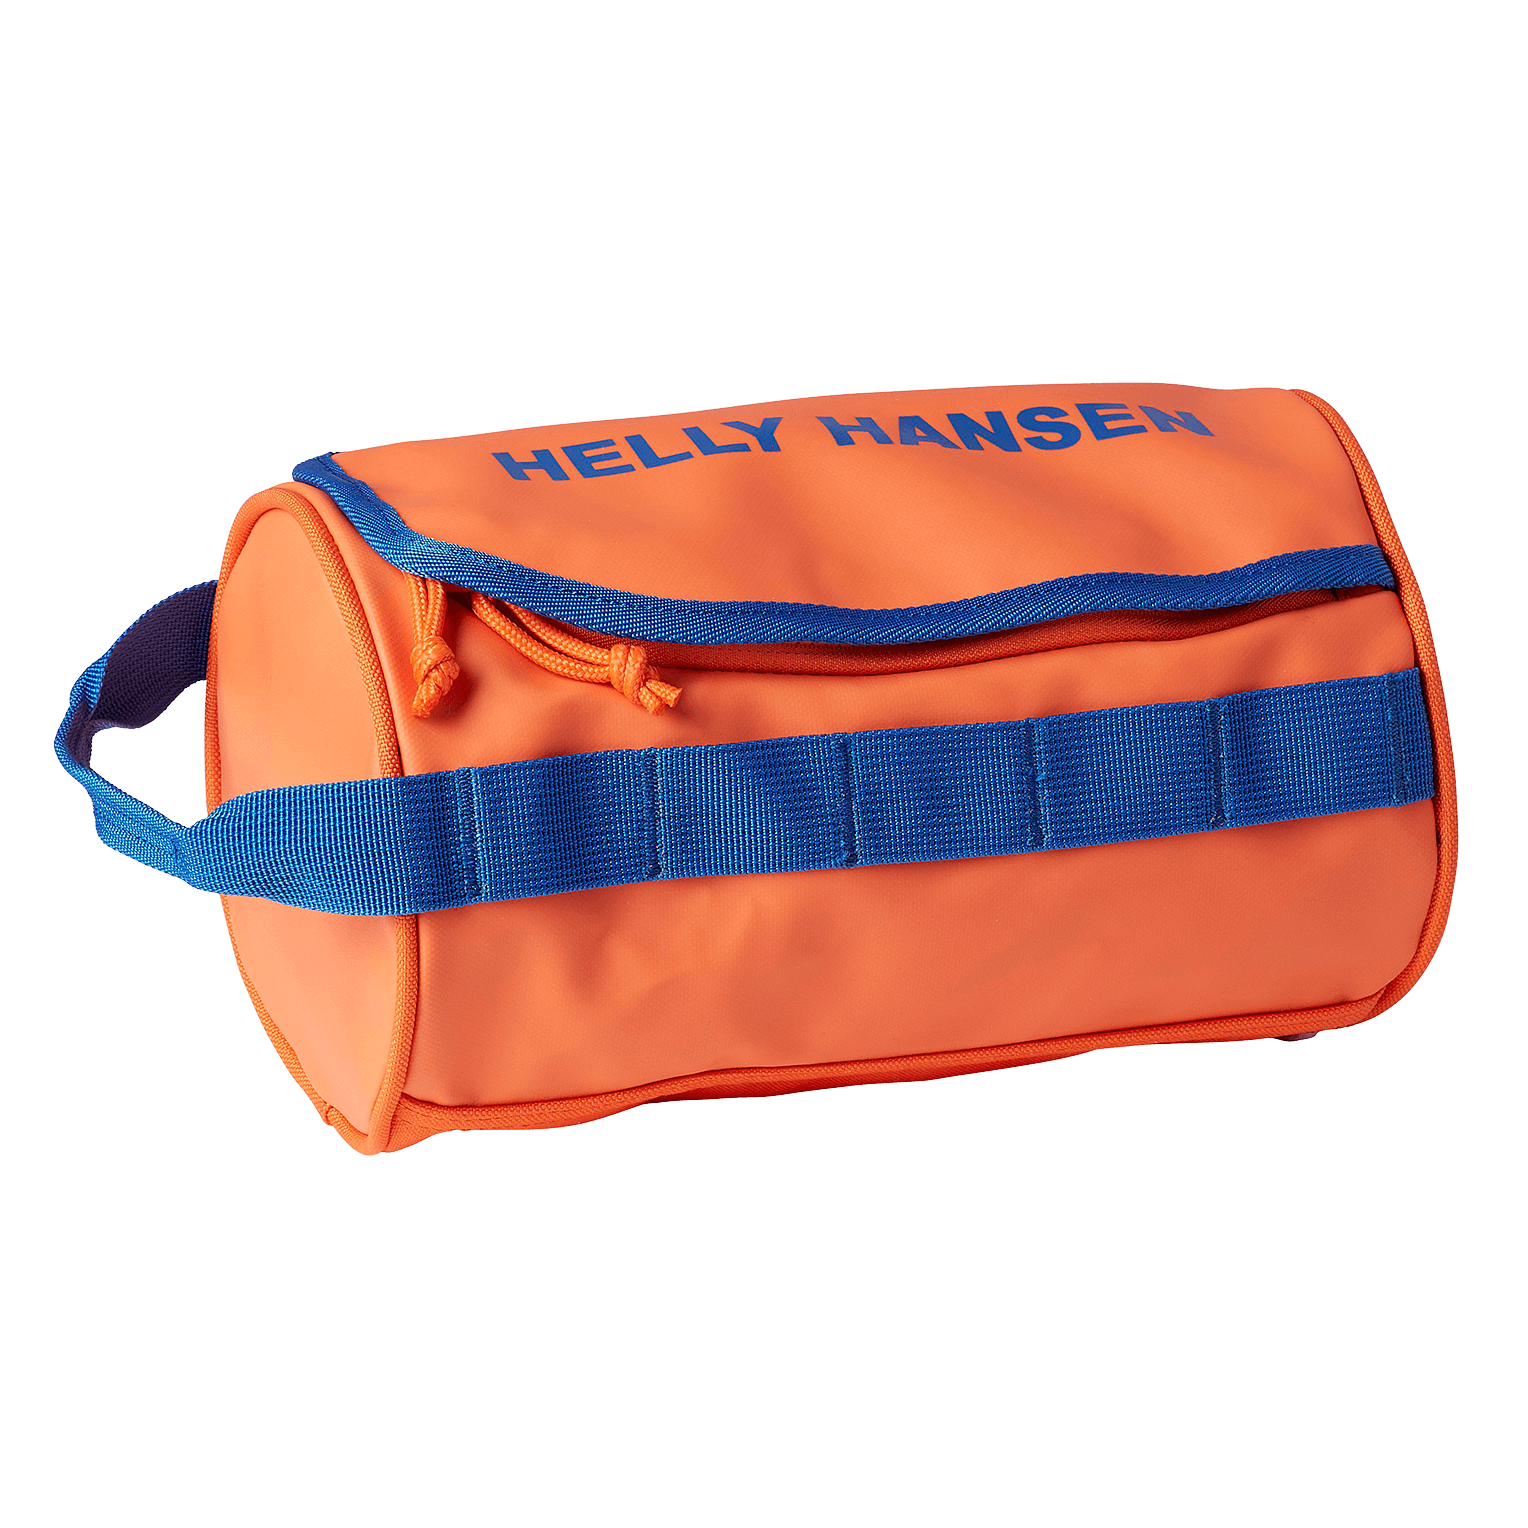 WASH BAG 2 Helly Hansen